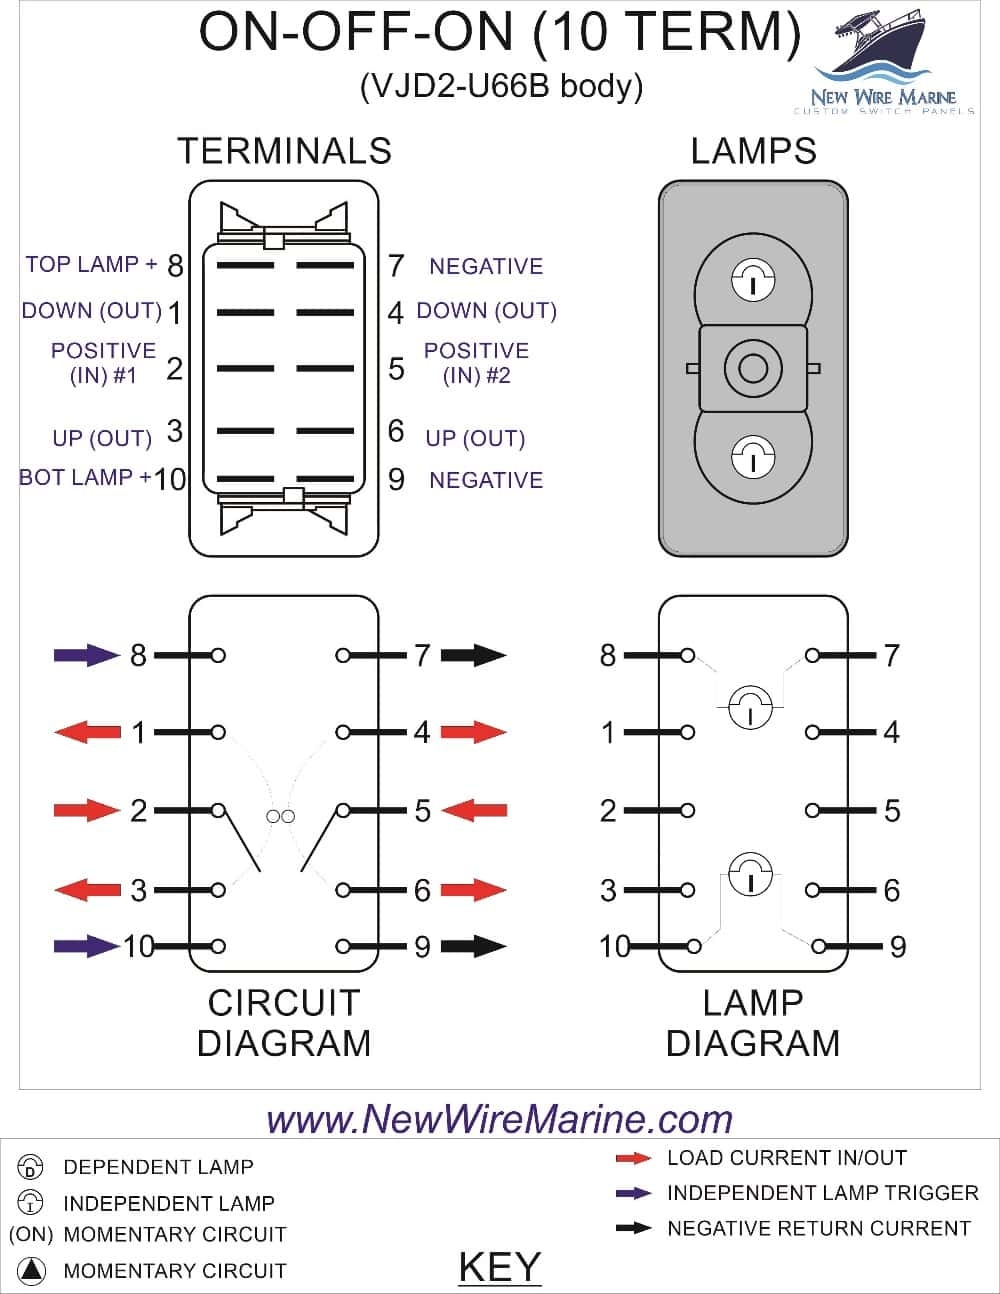 3 wire spdt toggle switch wiring diagram free download 3 wire spdt toggle switch wiring diagram